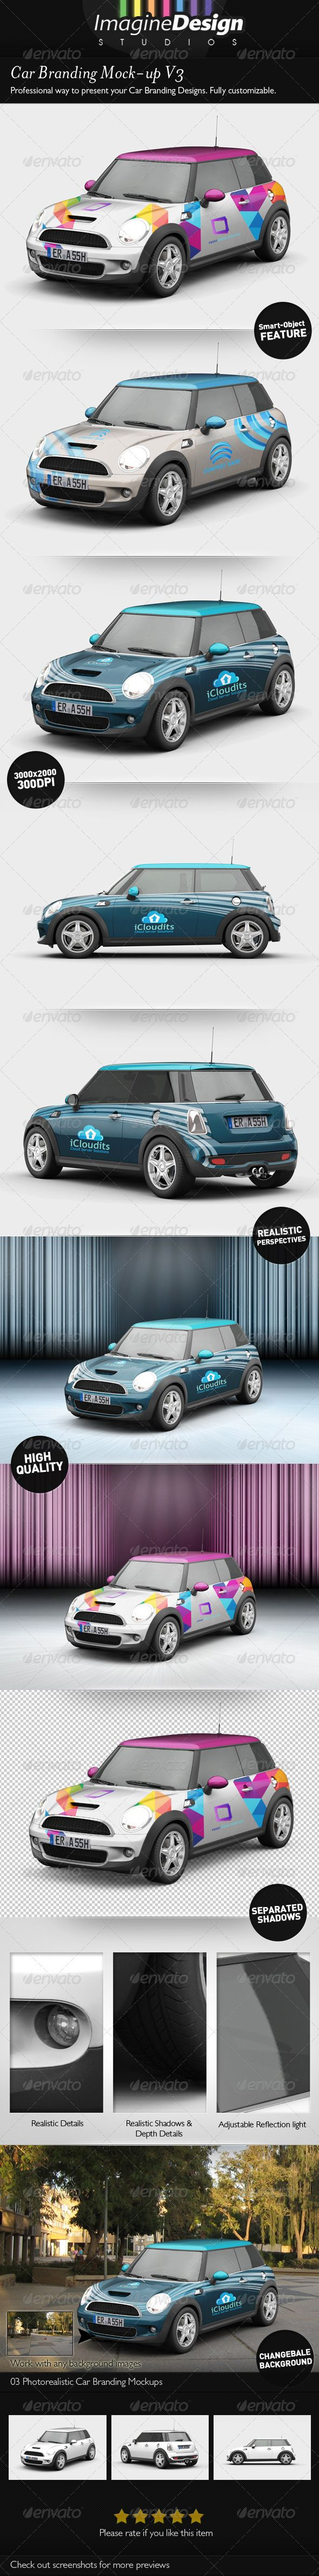 Car branding mock up v3